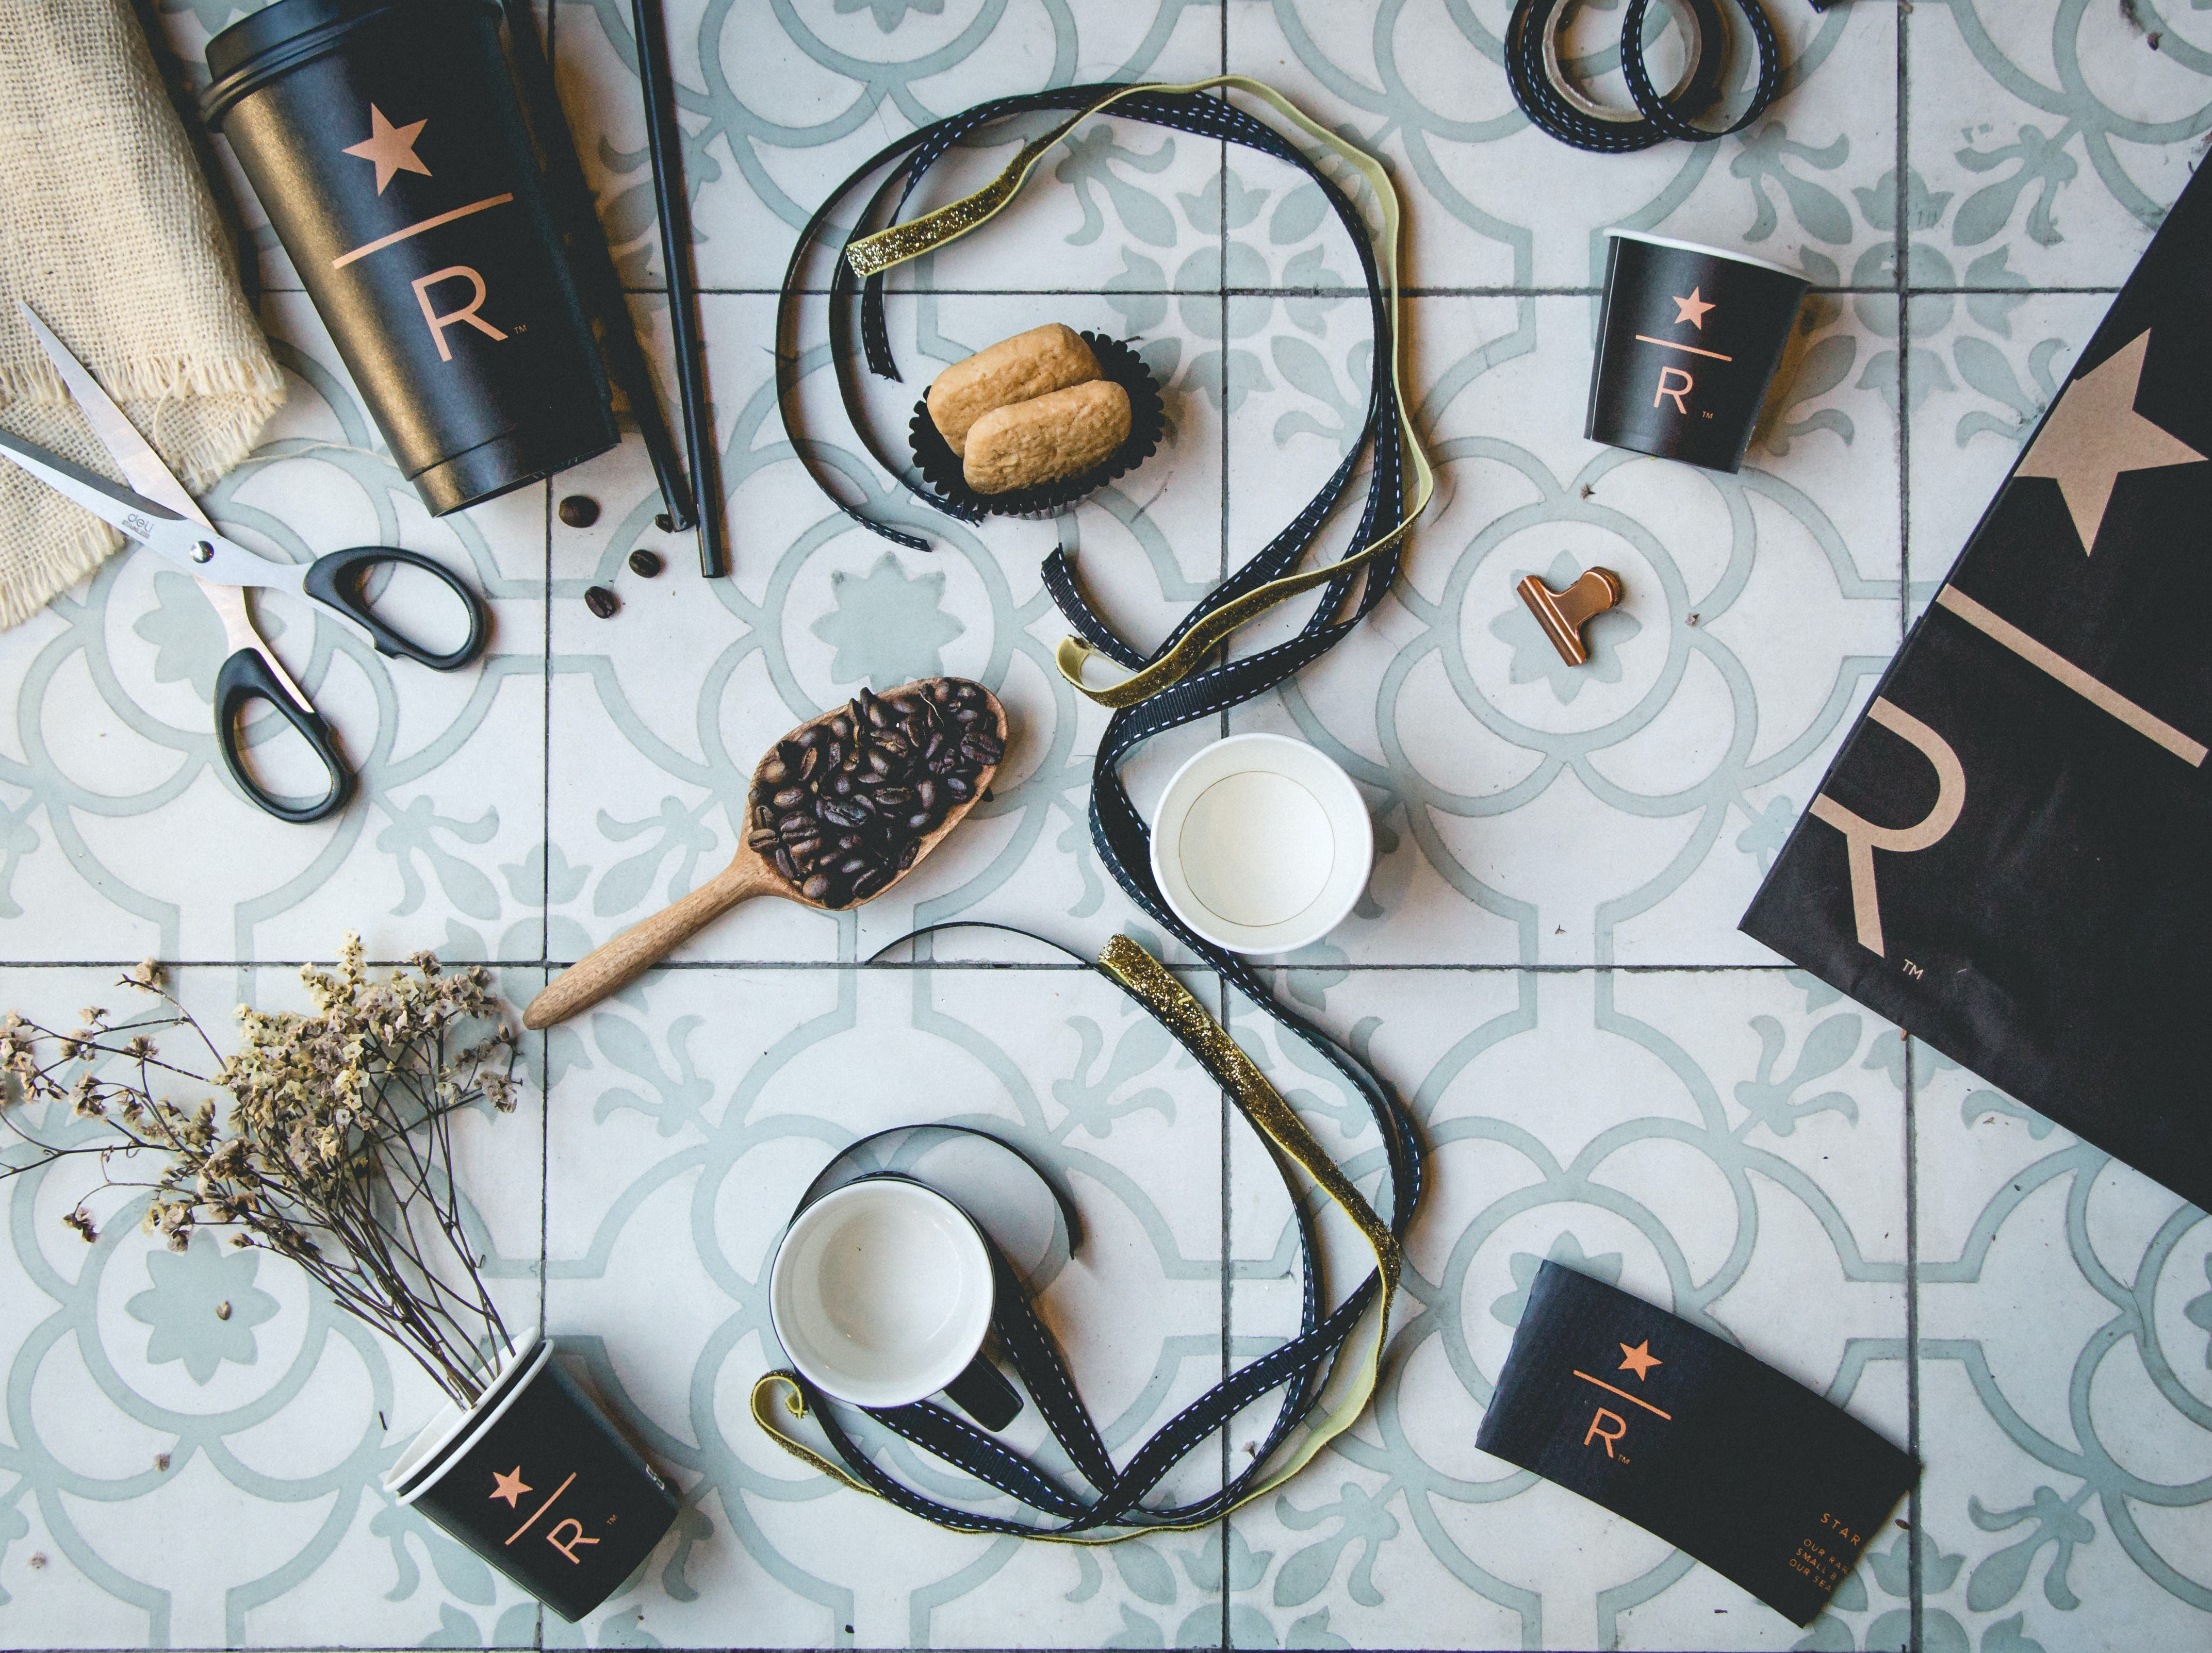 brown and black straps near coffee beans and cups on gray tiles